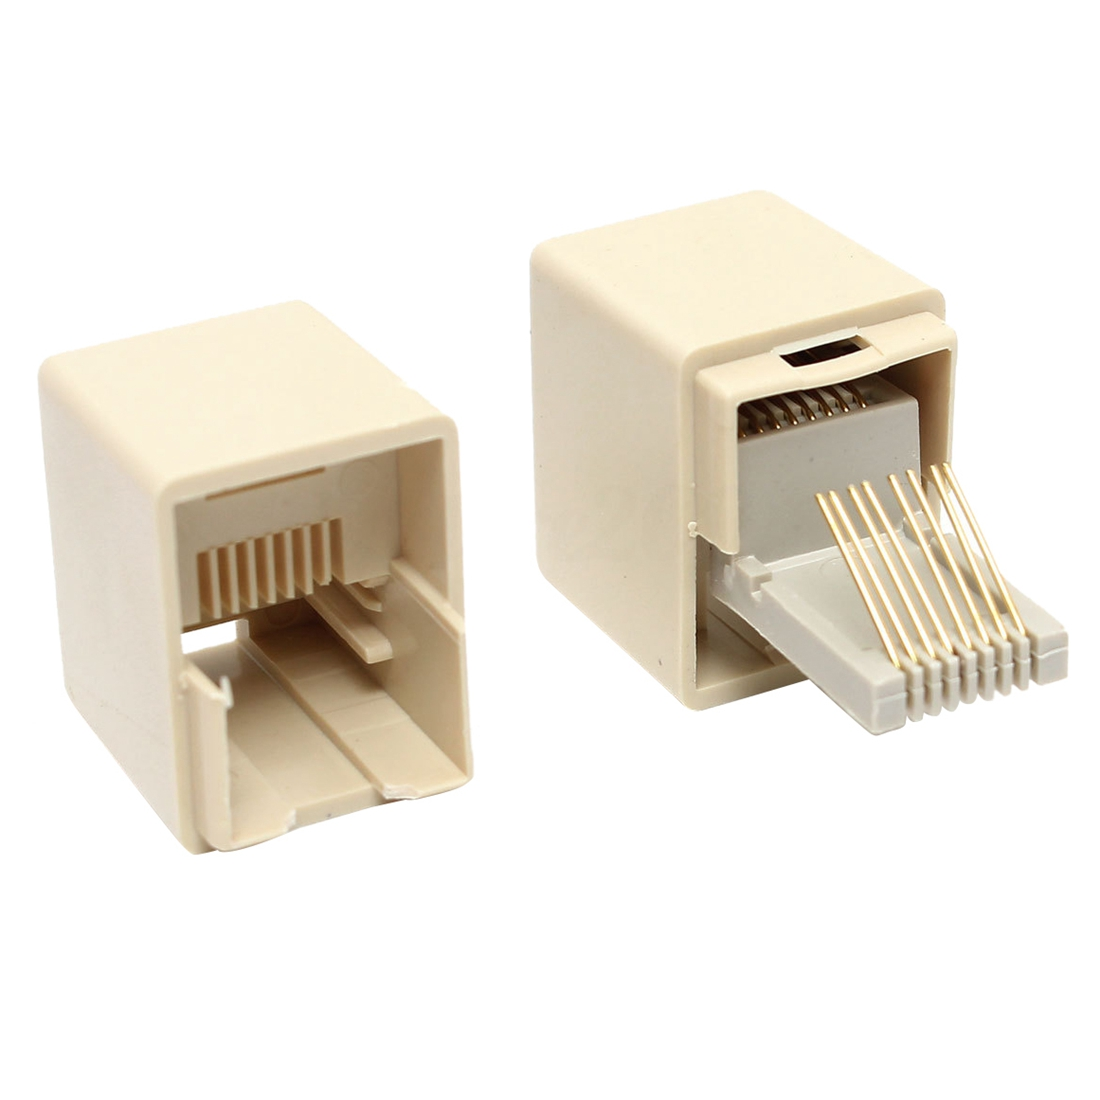 10pcs Rj45 Cat5e Straight Network Cable Ethernet Lan Coupler Through This Allows Two Cables With Connectors To Be Connected Together So That The Signal Will Pass